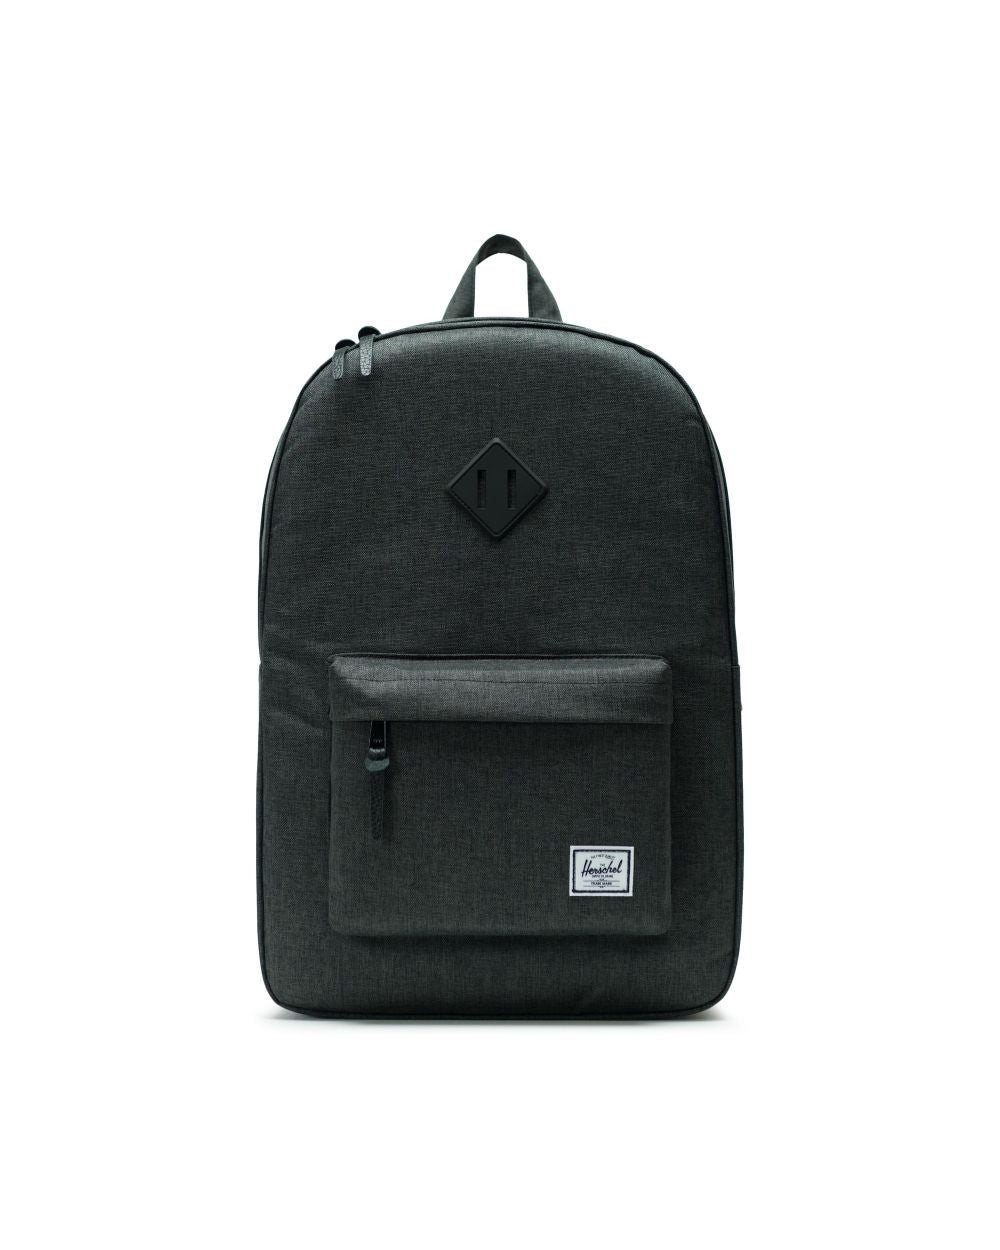 Heritage Backpack - Black Crosshatch/Black